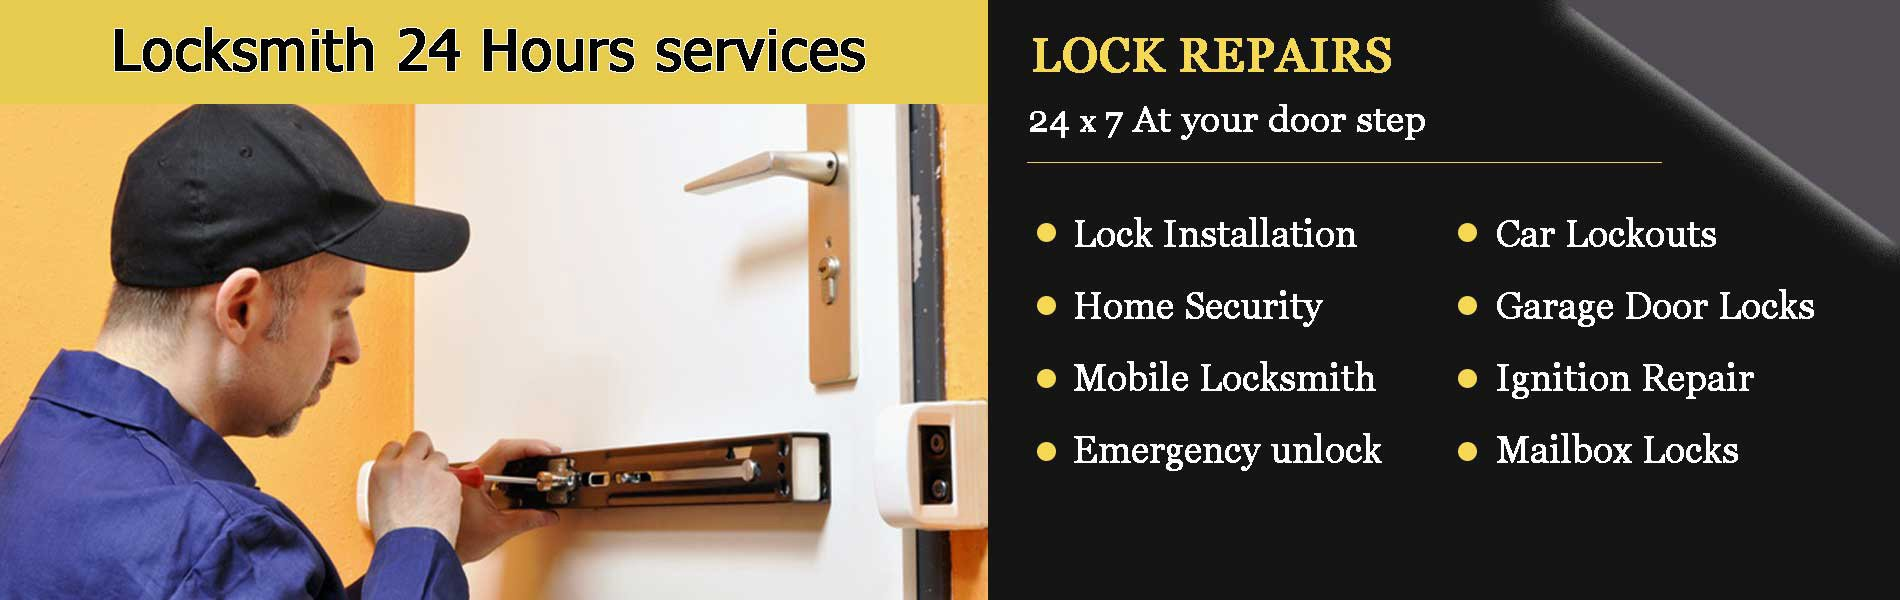 City Locksmith Store Los Angeles, CA 310-819-4224